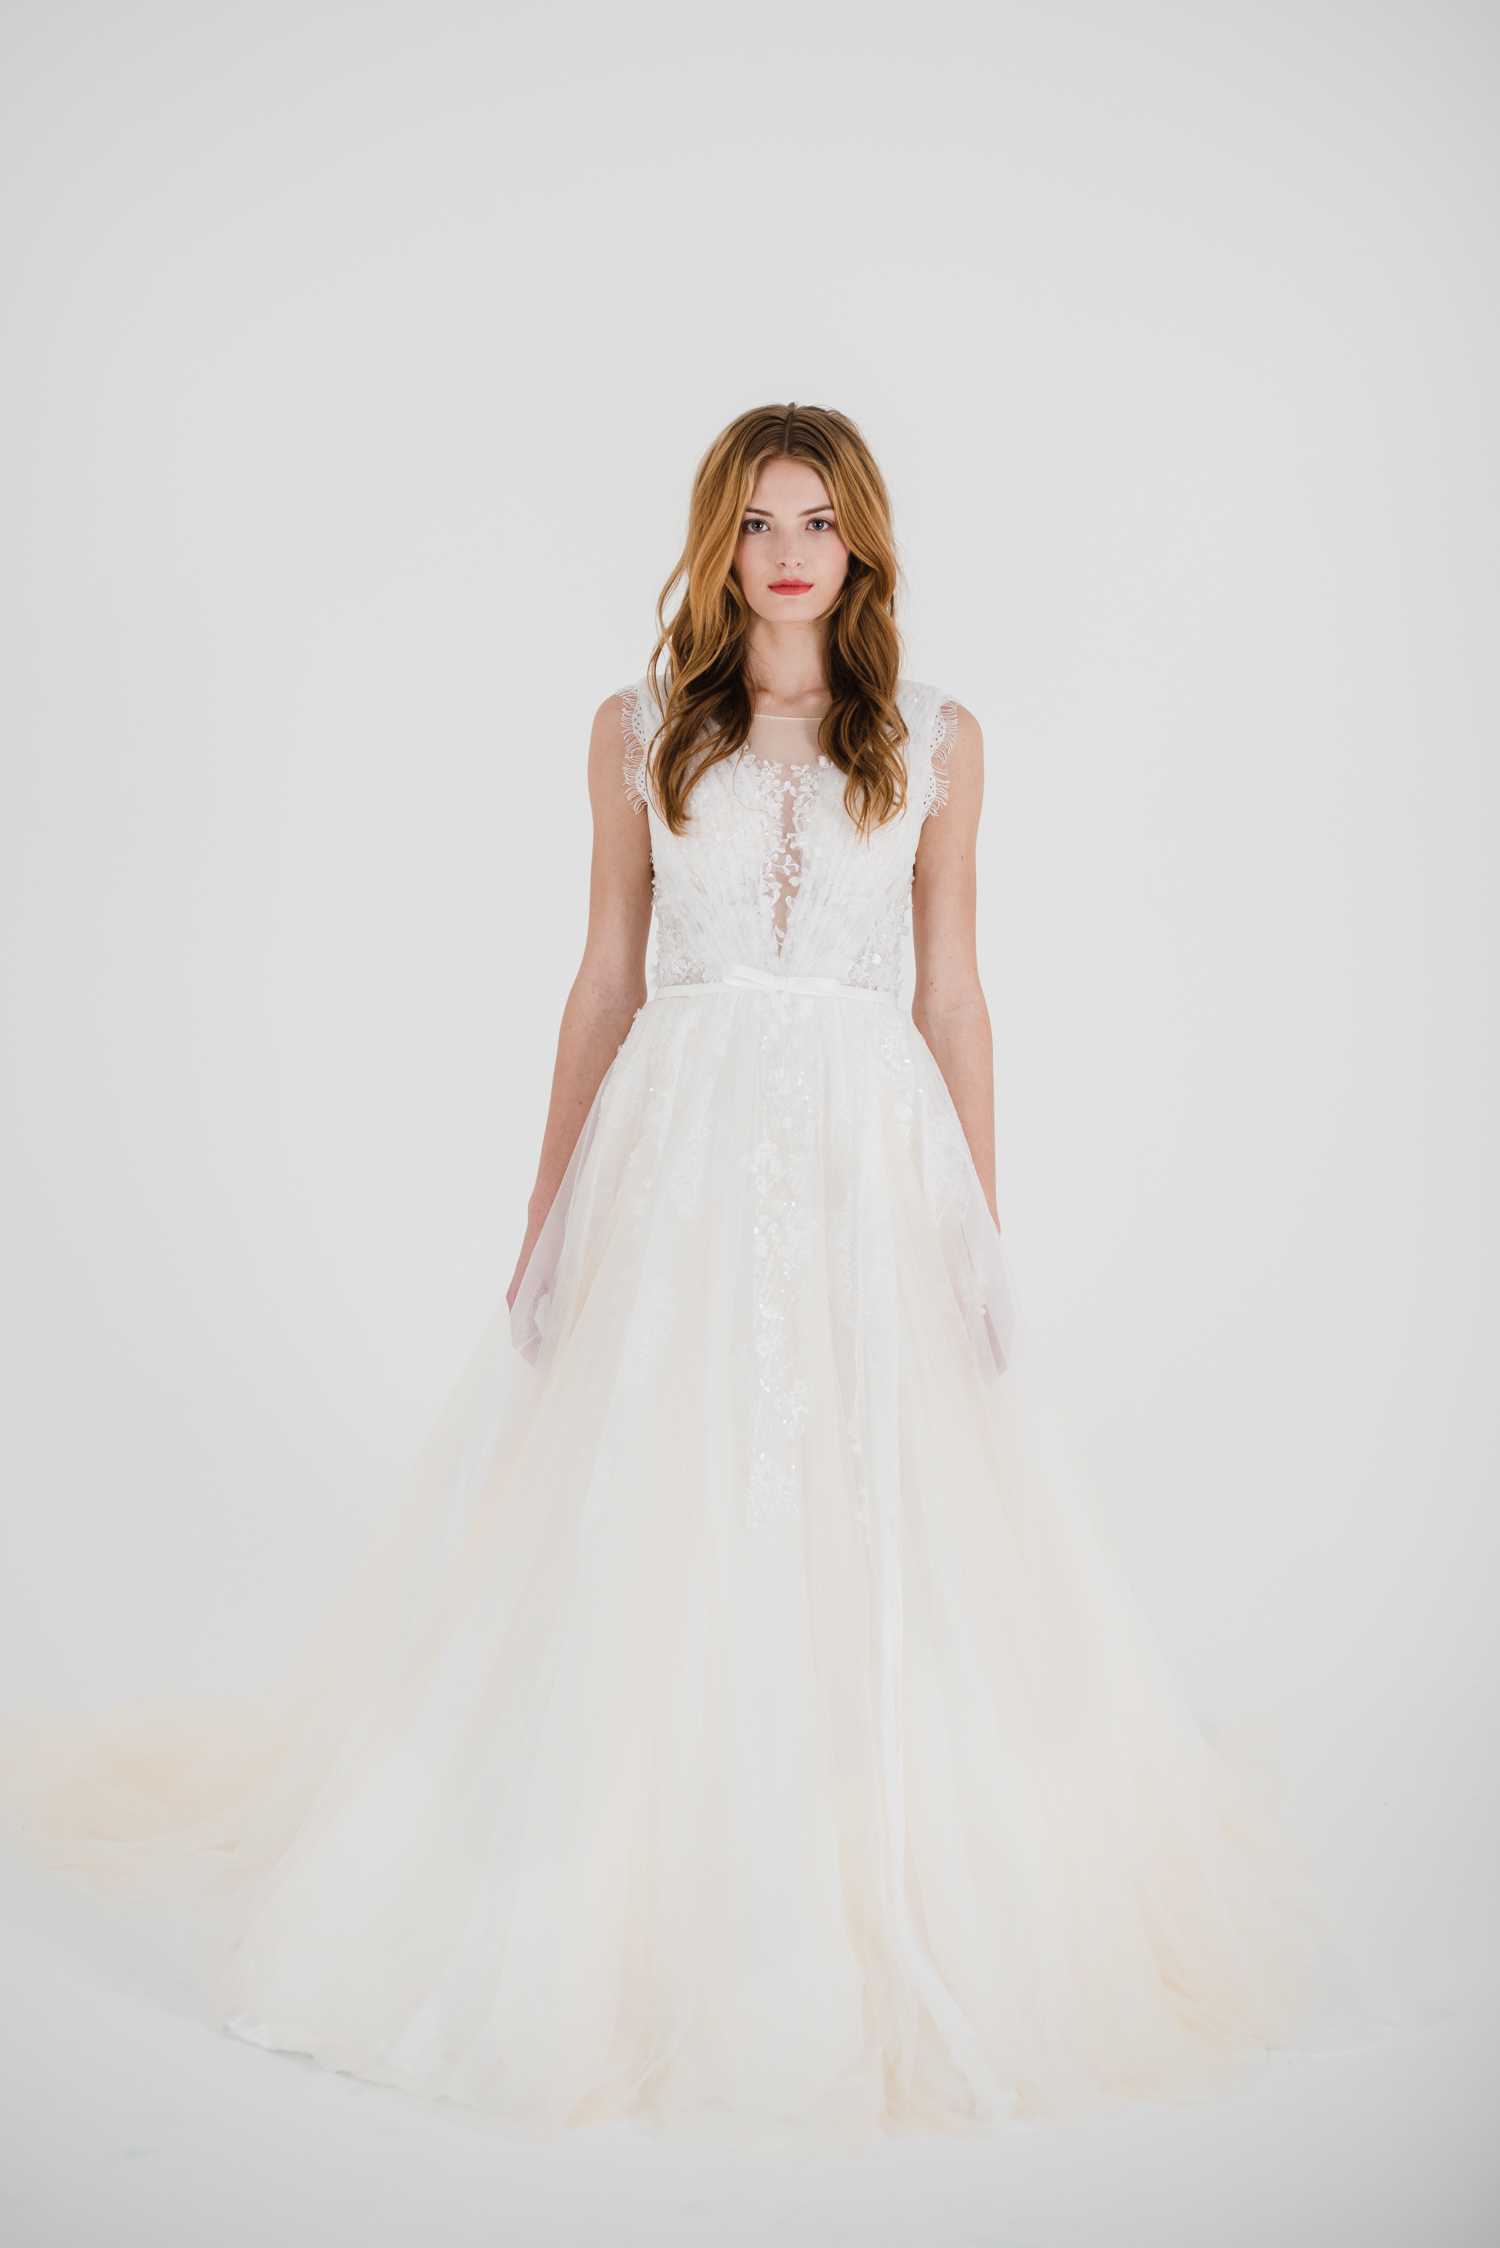 fun ballgown fit wedding gown with floral lace bodice and tulle lace skirt